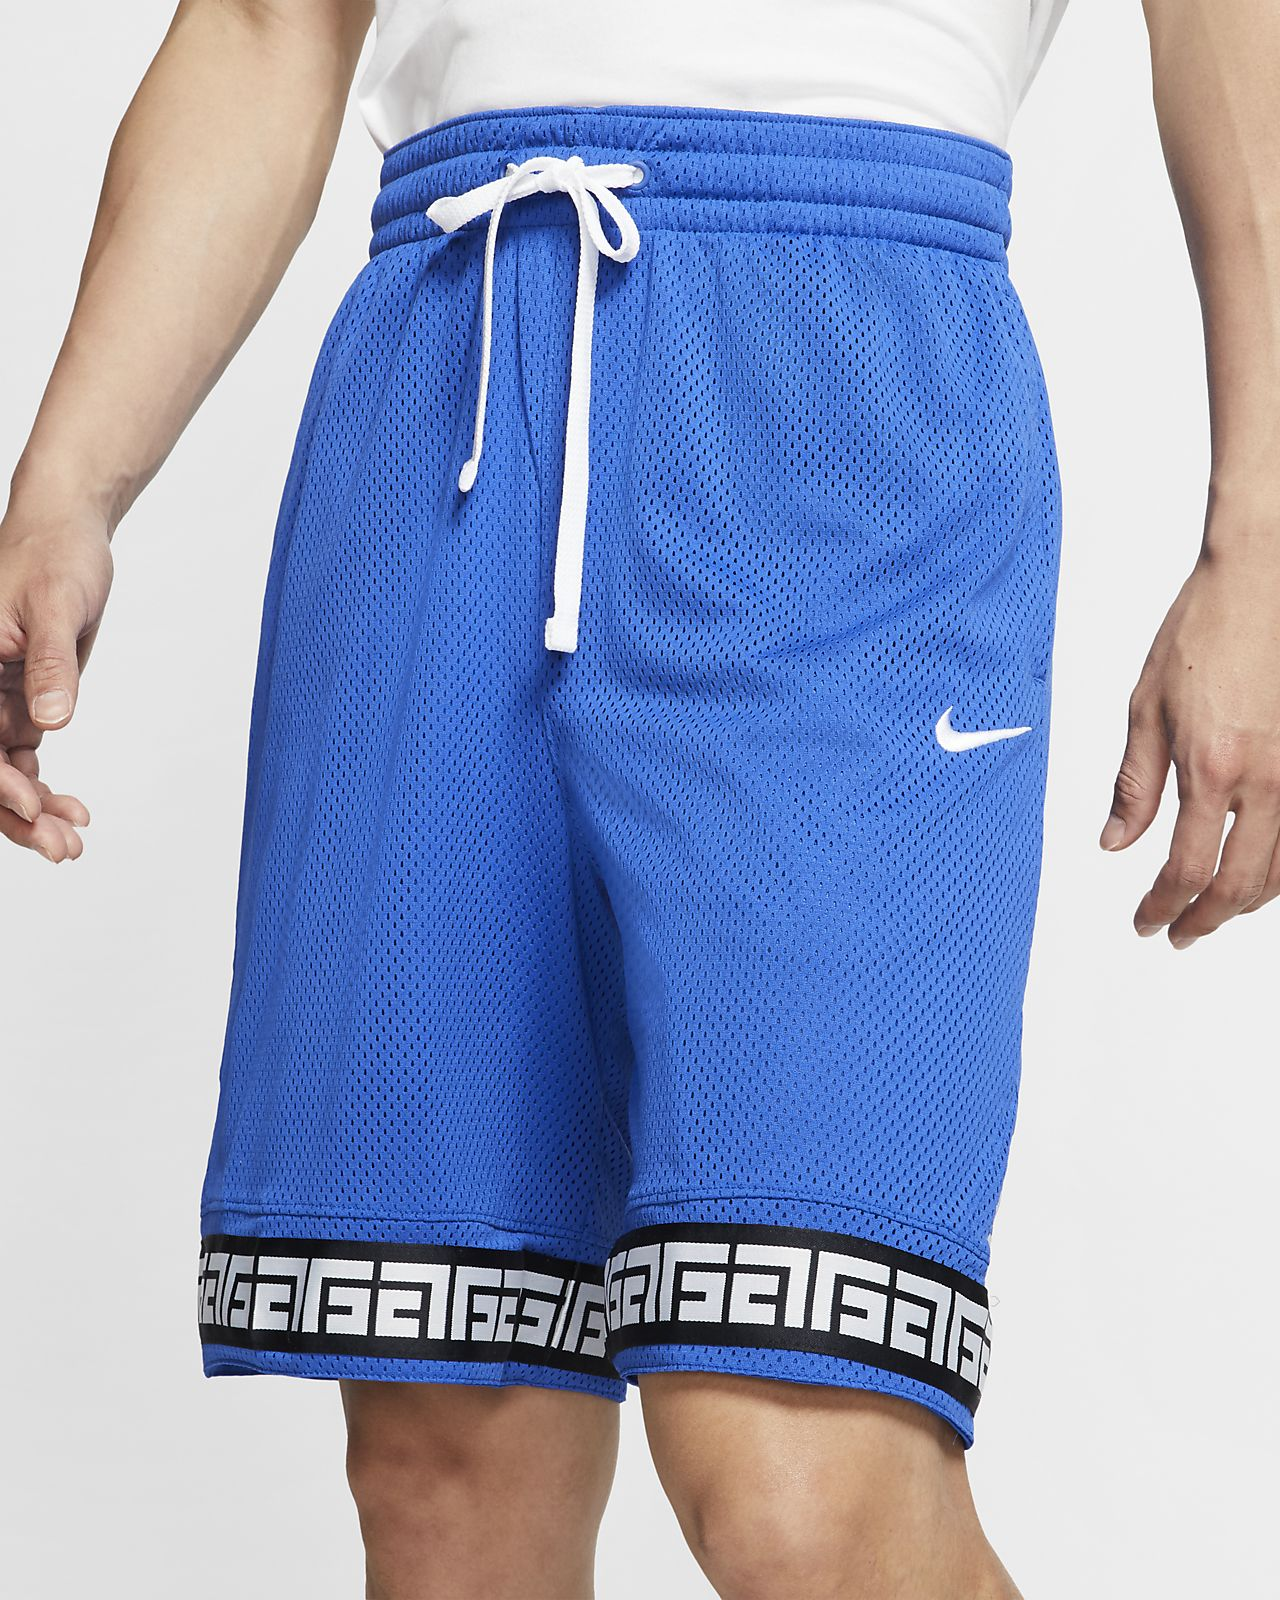 Short de basketball à logo Giannis pour Homme